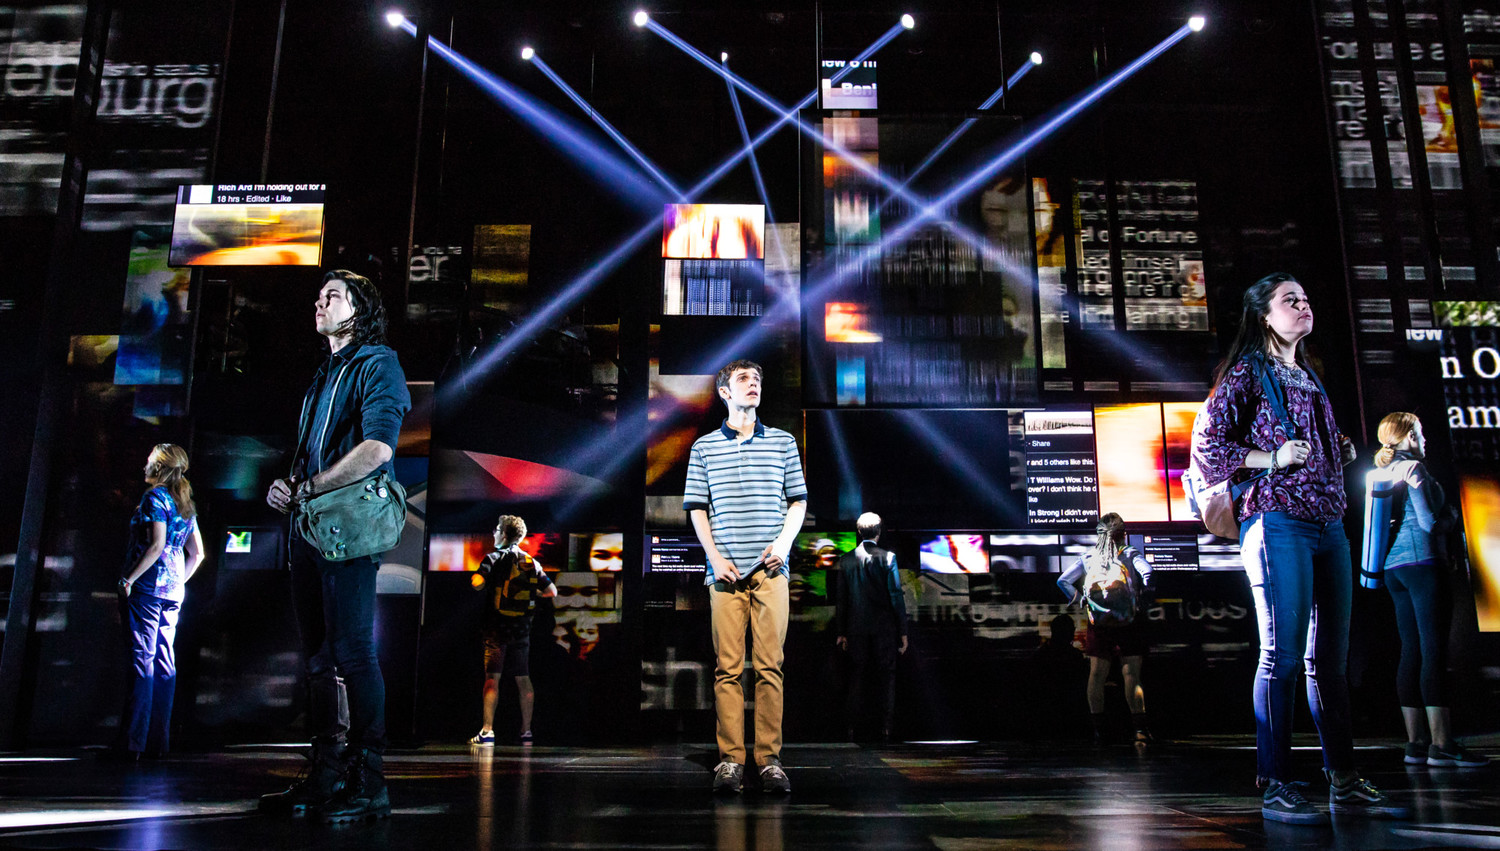 BWW Review: DEAR EVAN HANSEN Shows Orlando Why It Rocked Broadway